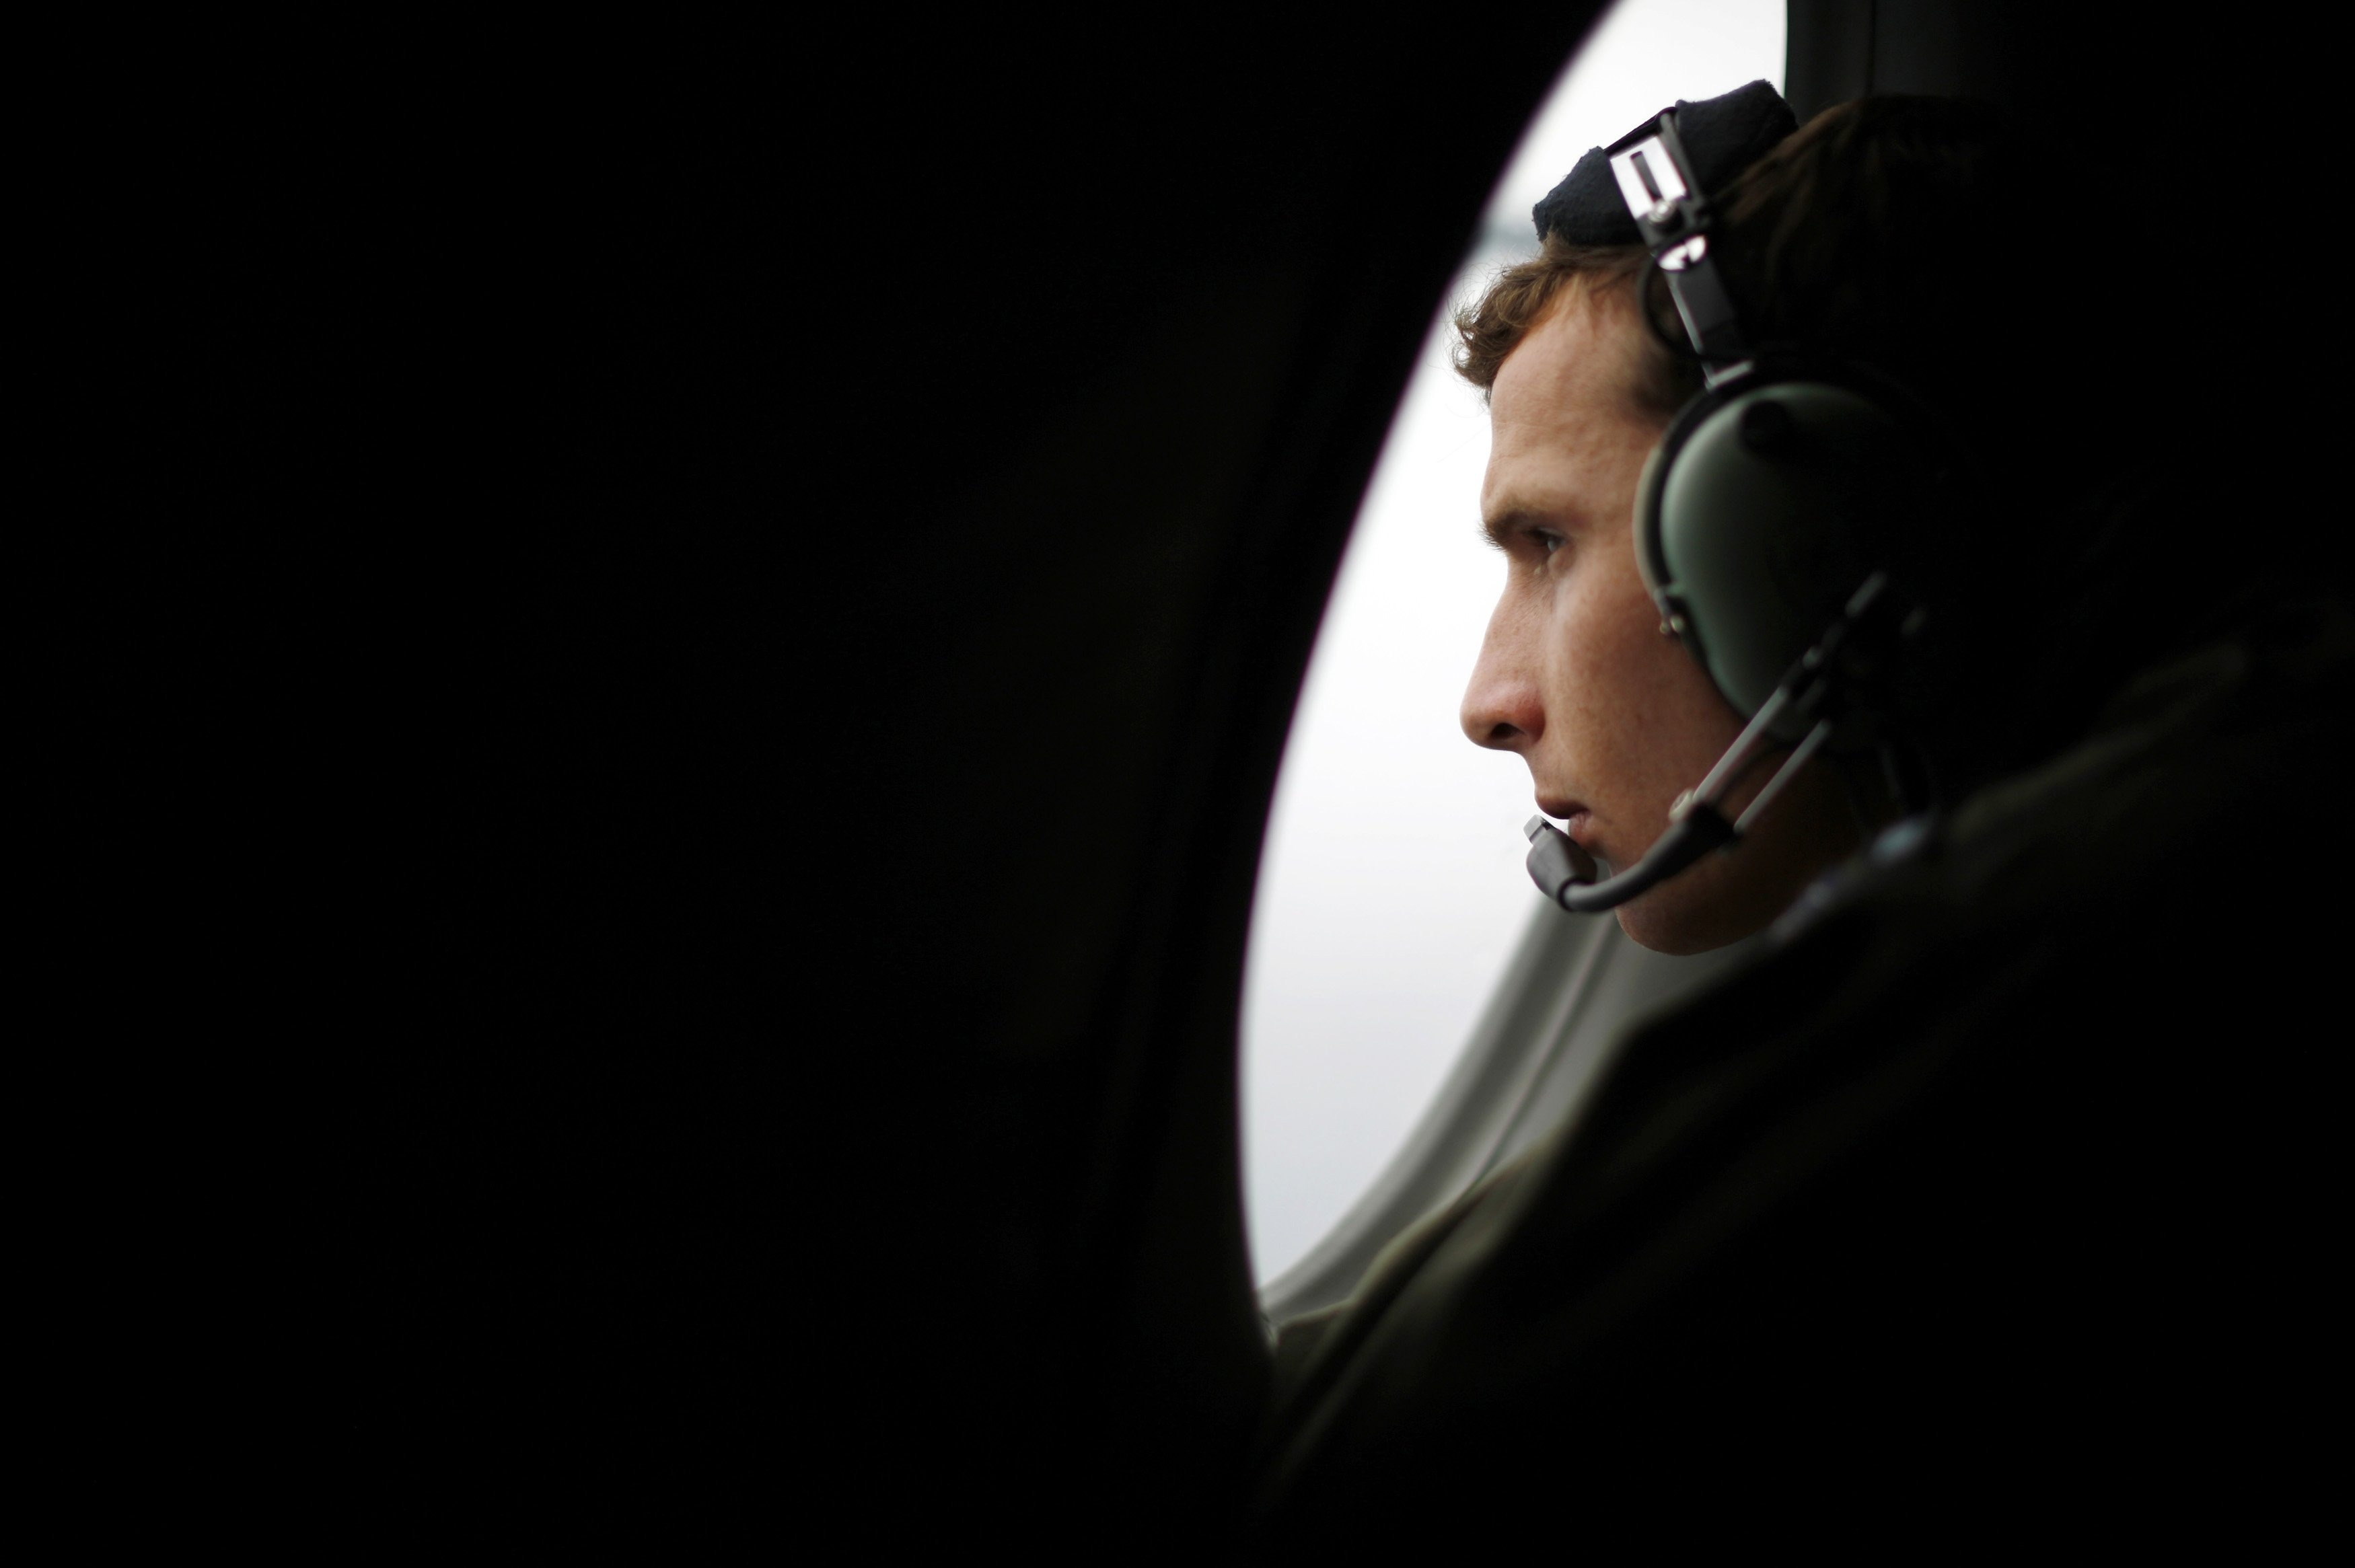 A crew member aboard a Royal New Zealand Air Force P-3K2 Orion aircraft searches for the missing Malaysian Airlines Flight MH370 over the southern Indian Ocean on March 22, 2014